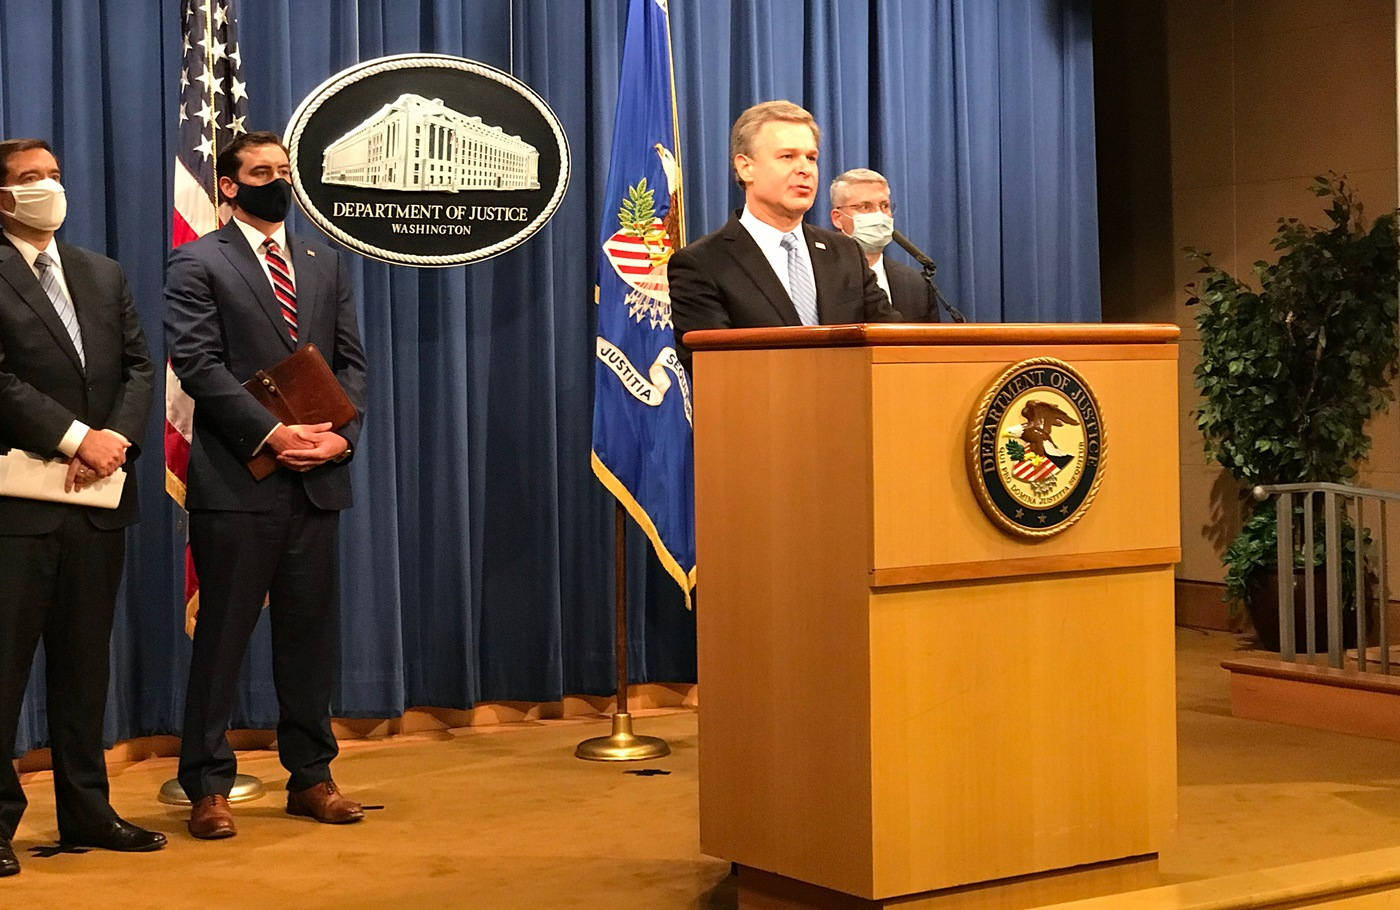 FBI Director Christopher Wray speaks at an October 7, 2020 press conference at the Department of Justice where charges were announced against two ISIS militants.